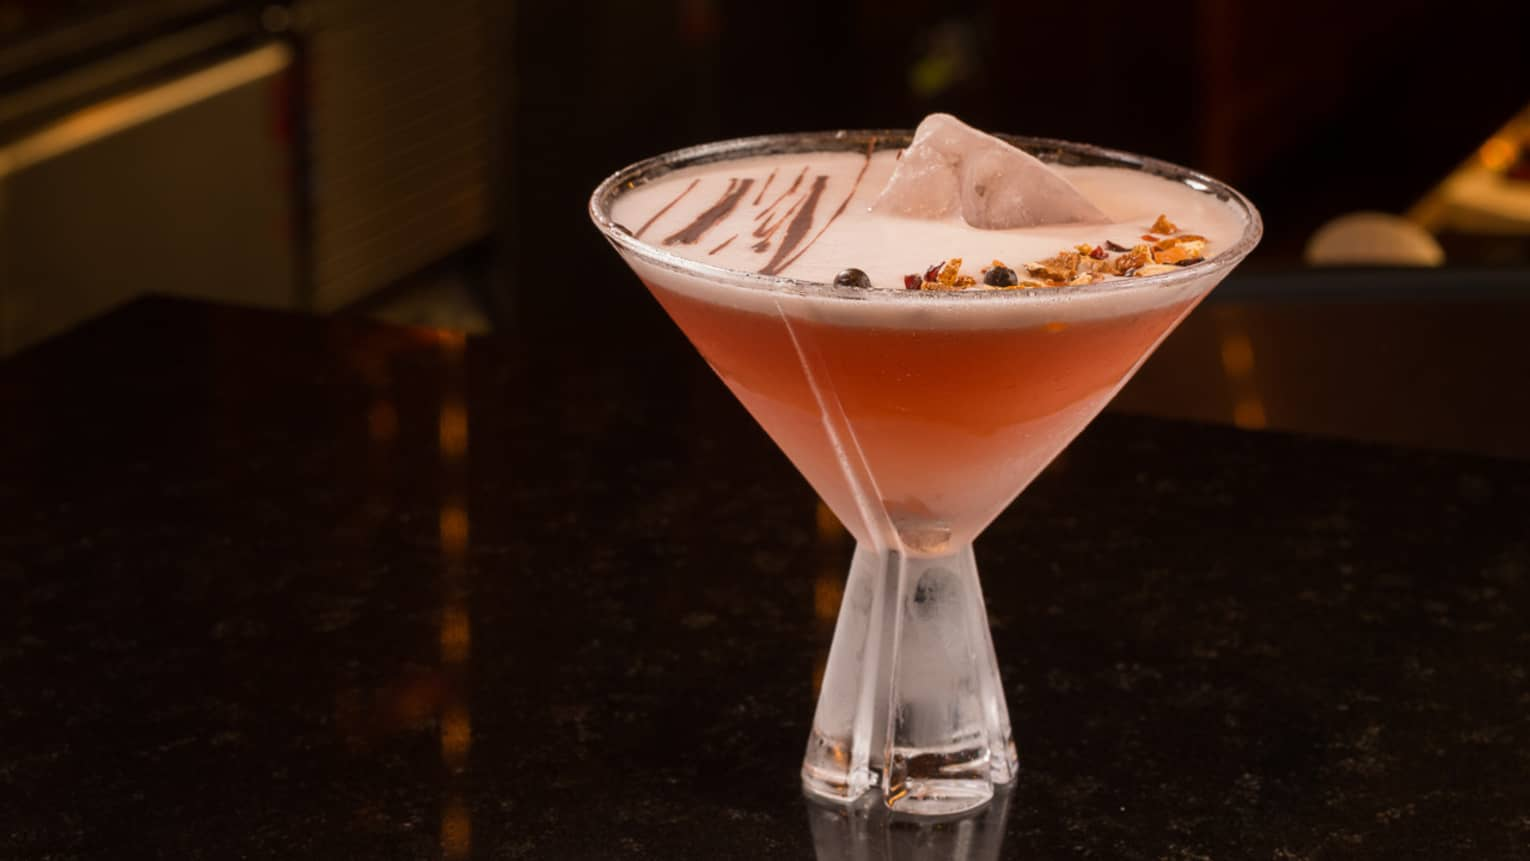 Carmenere Cocktail in martini glass, pink drink with creamy foam drizzled with chocolate